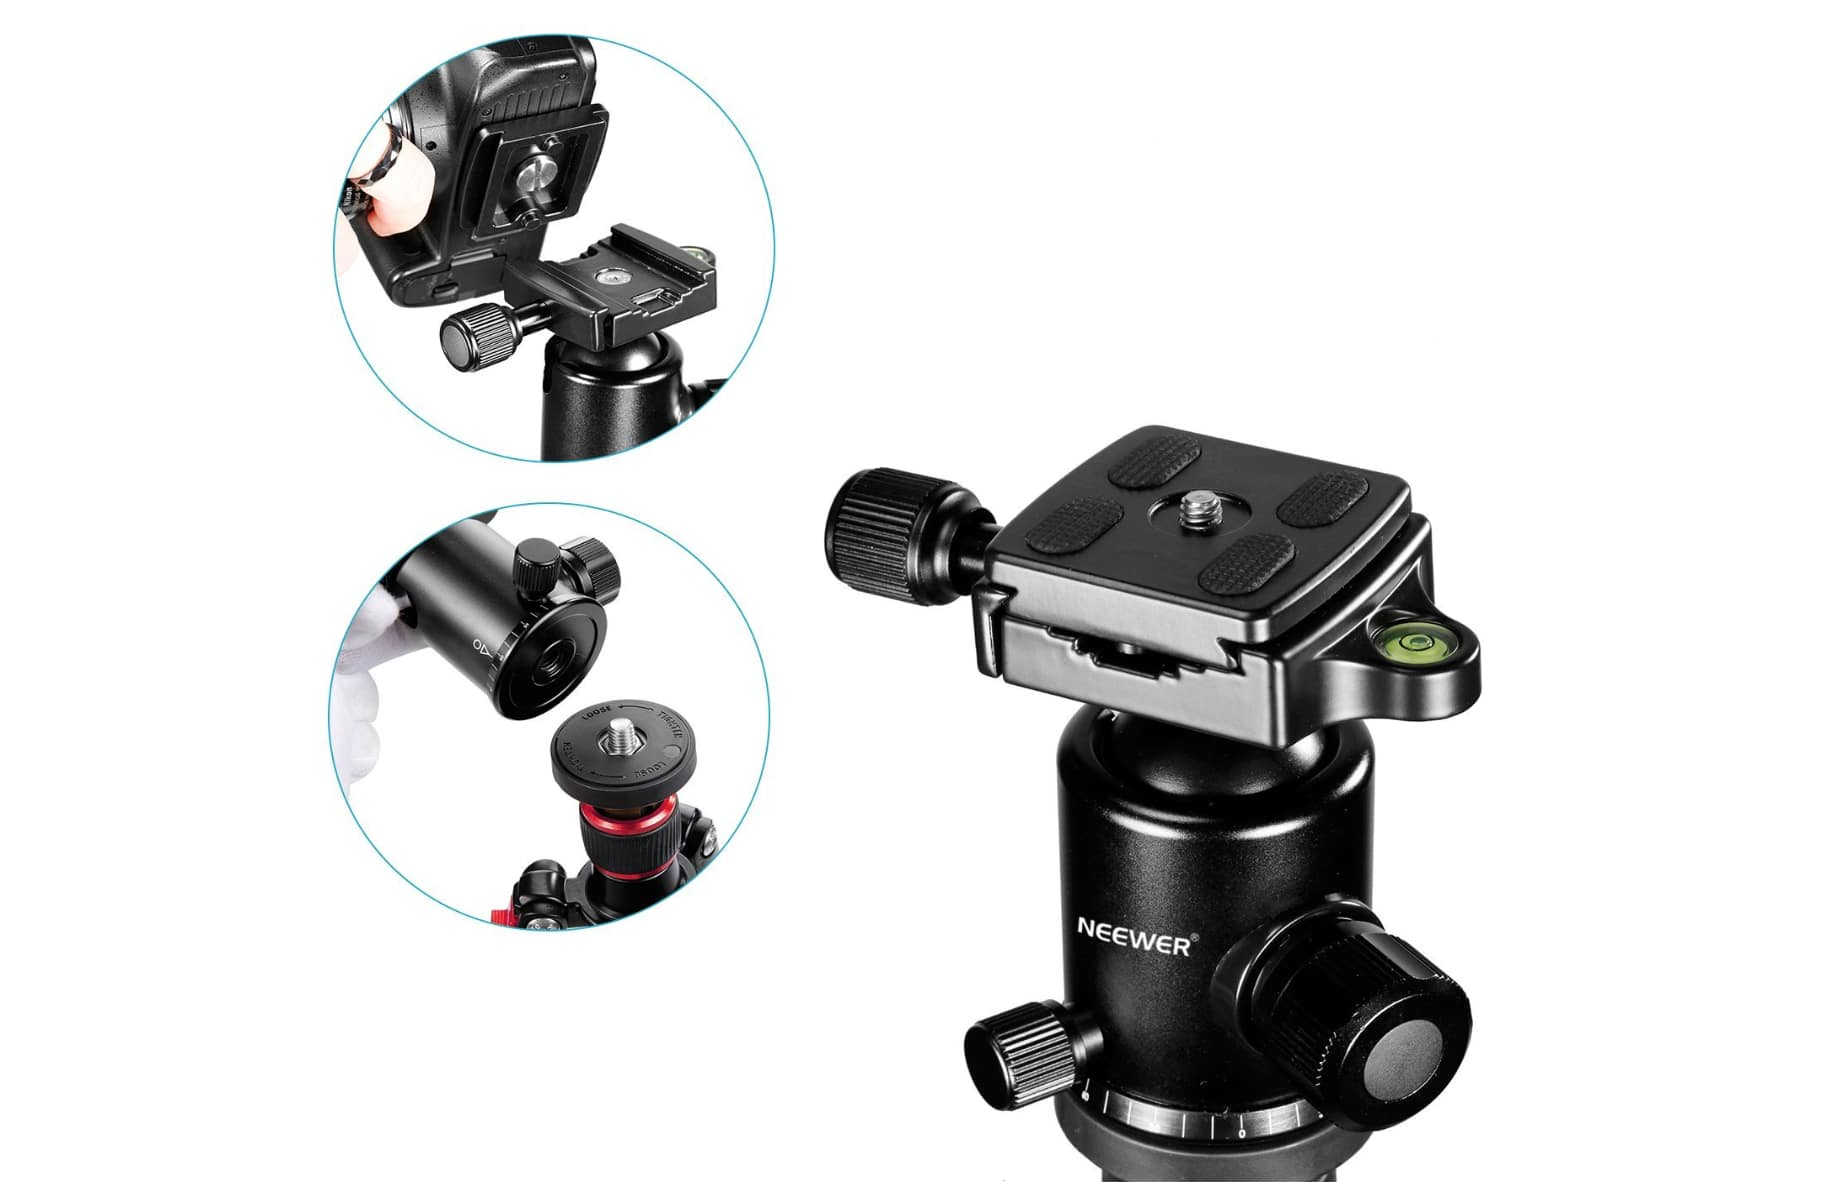 ball head and quick release plate of newer tripod